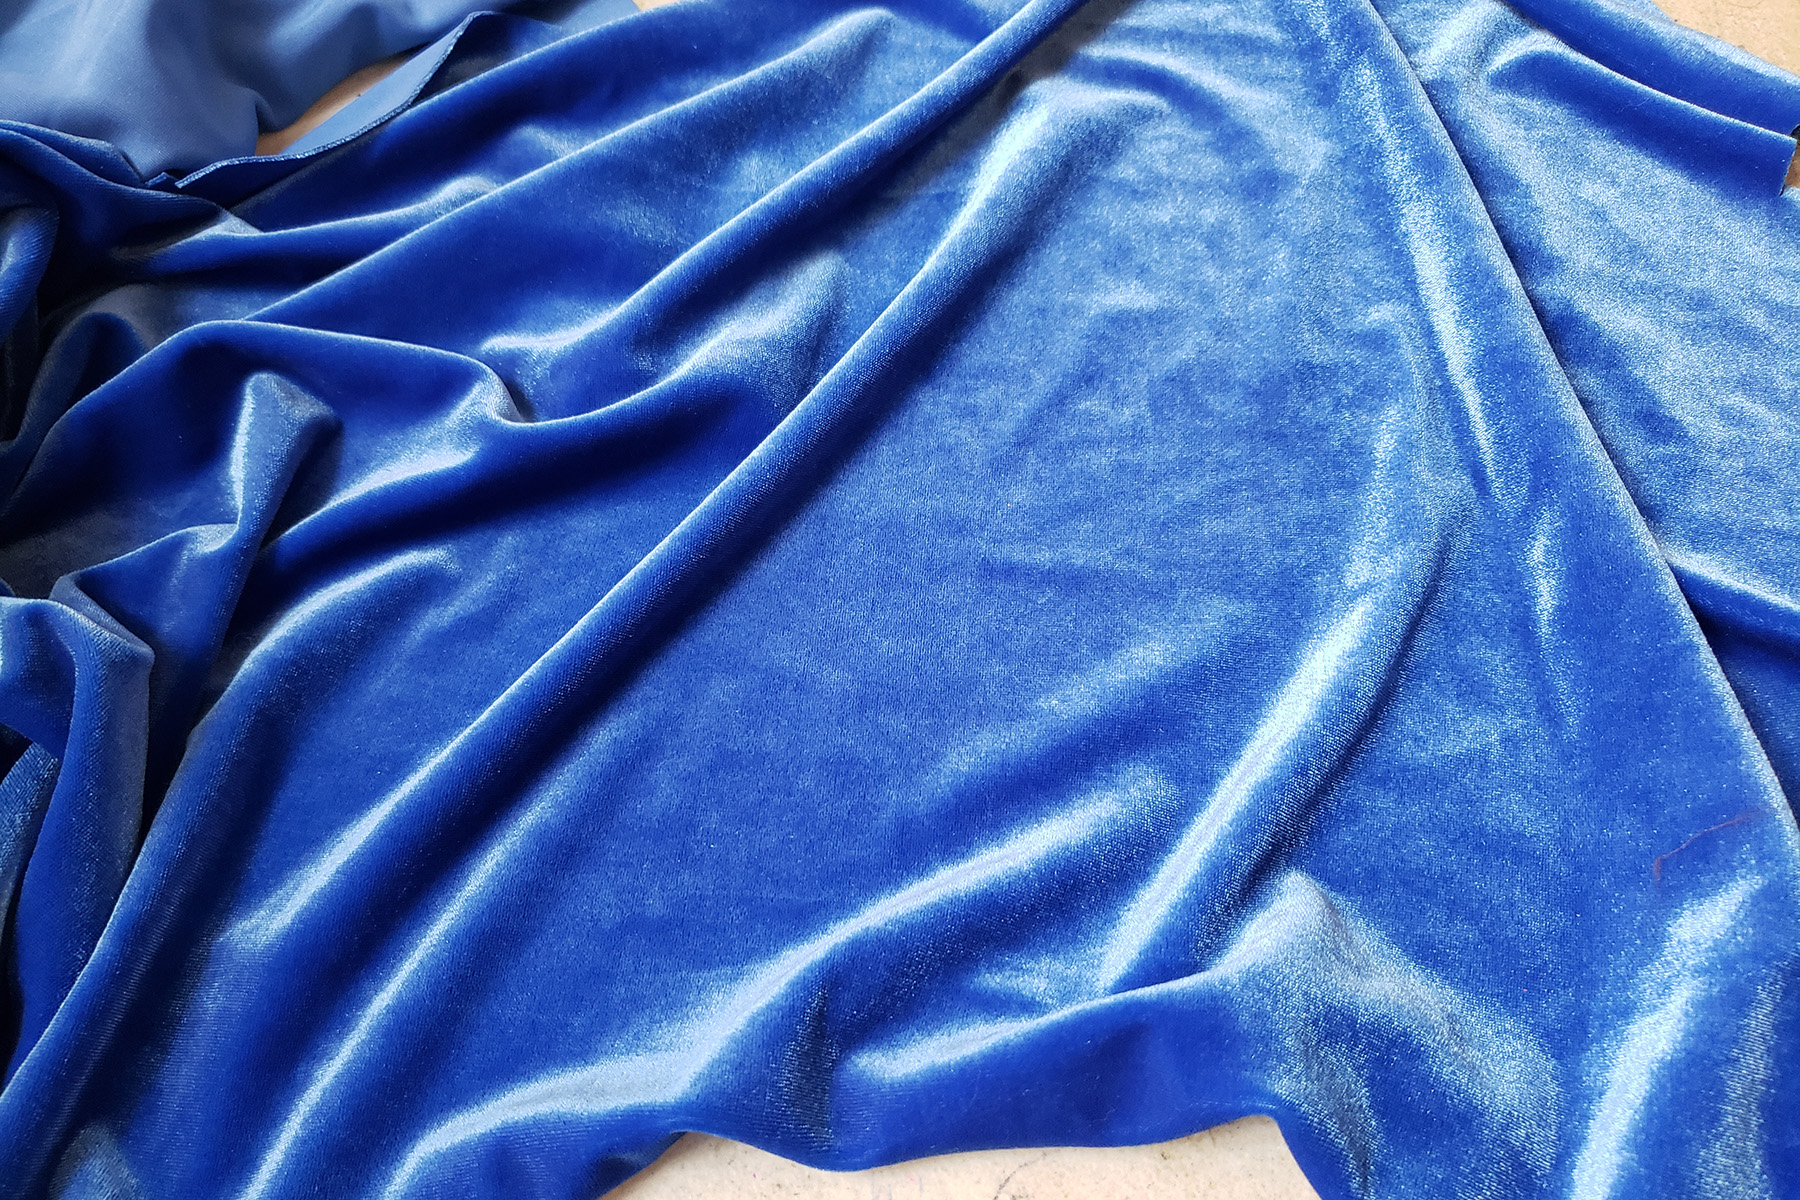 A swath of blue stretch velvet is draped over a work surface.